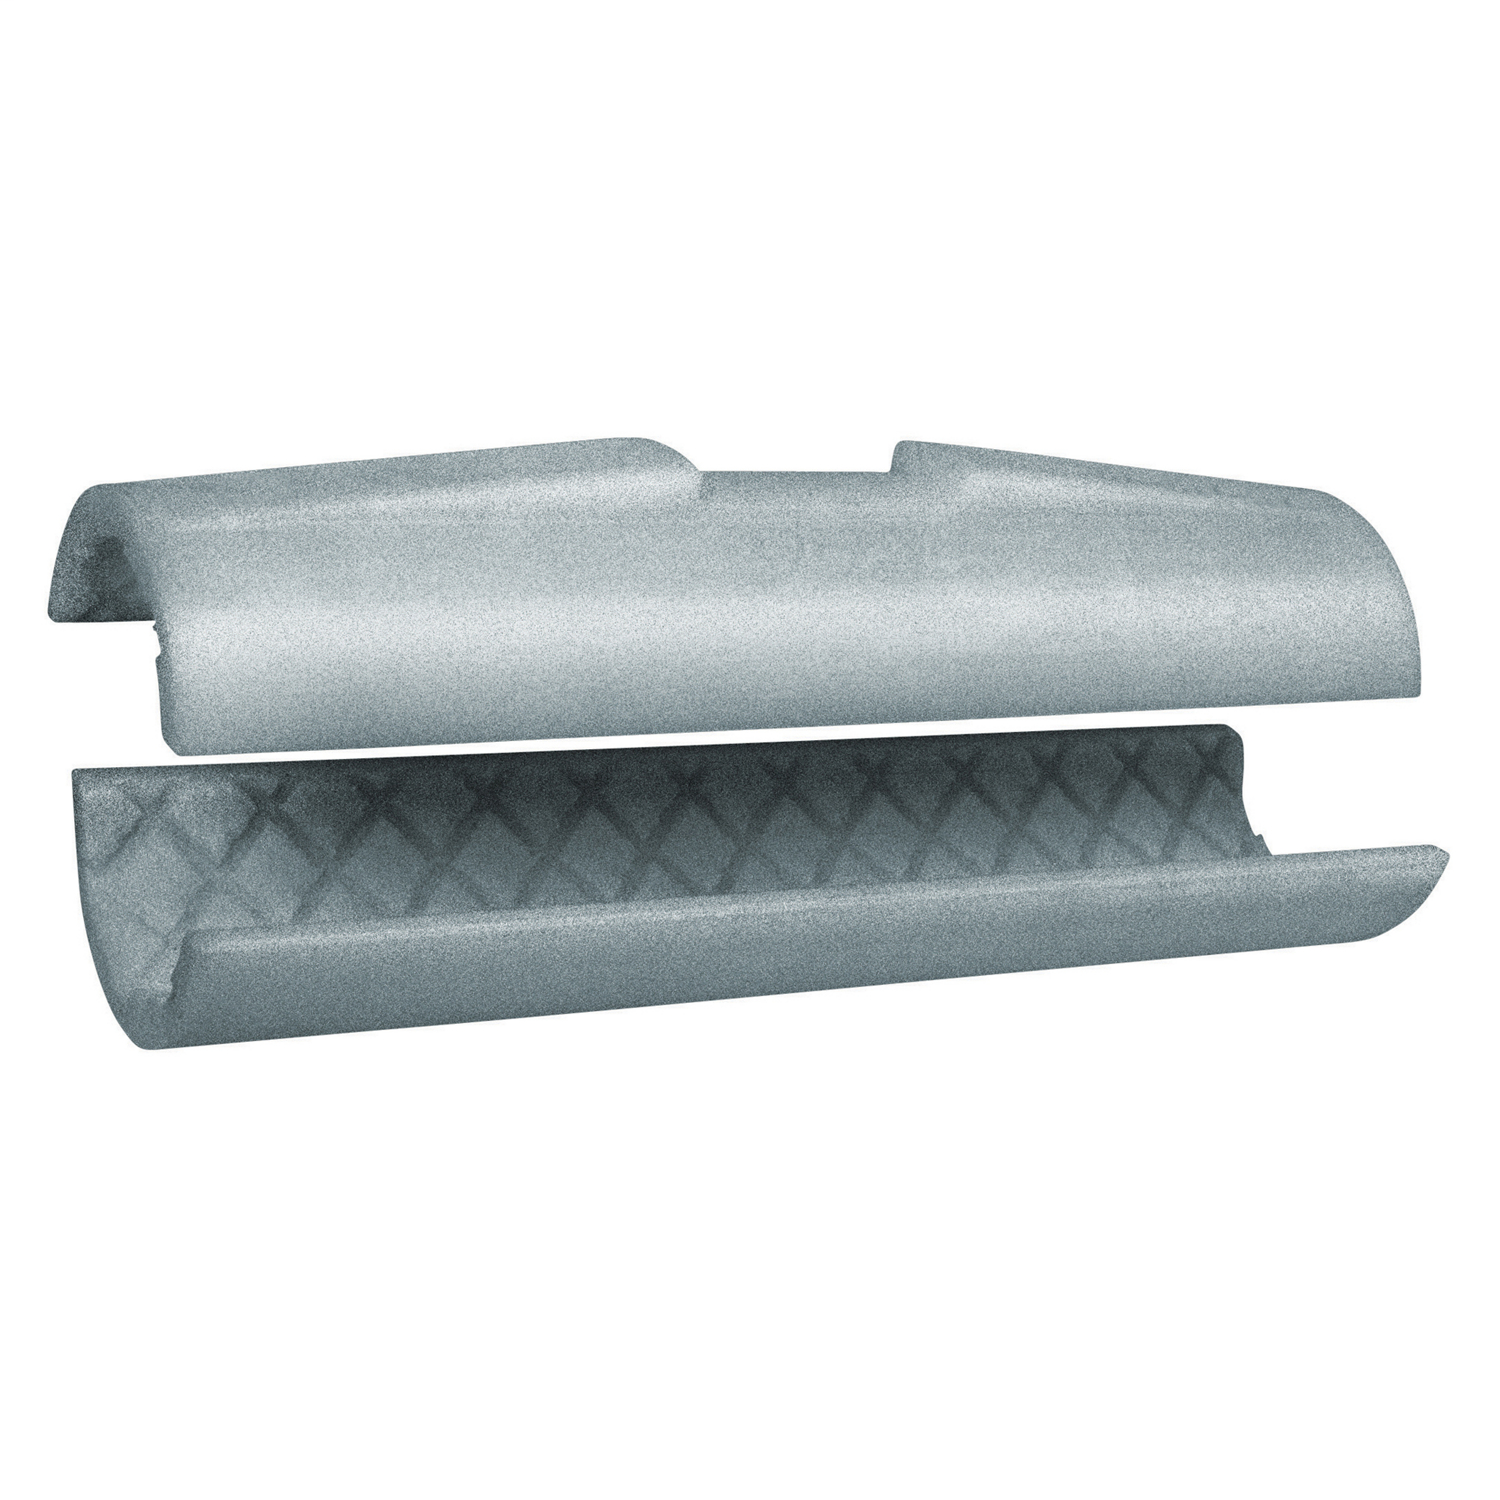 Half-Shell Clamp for Conduit